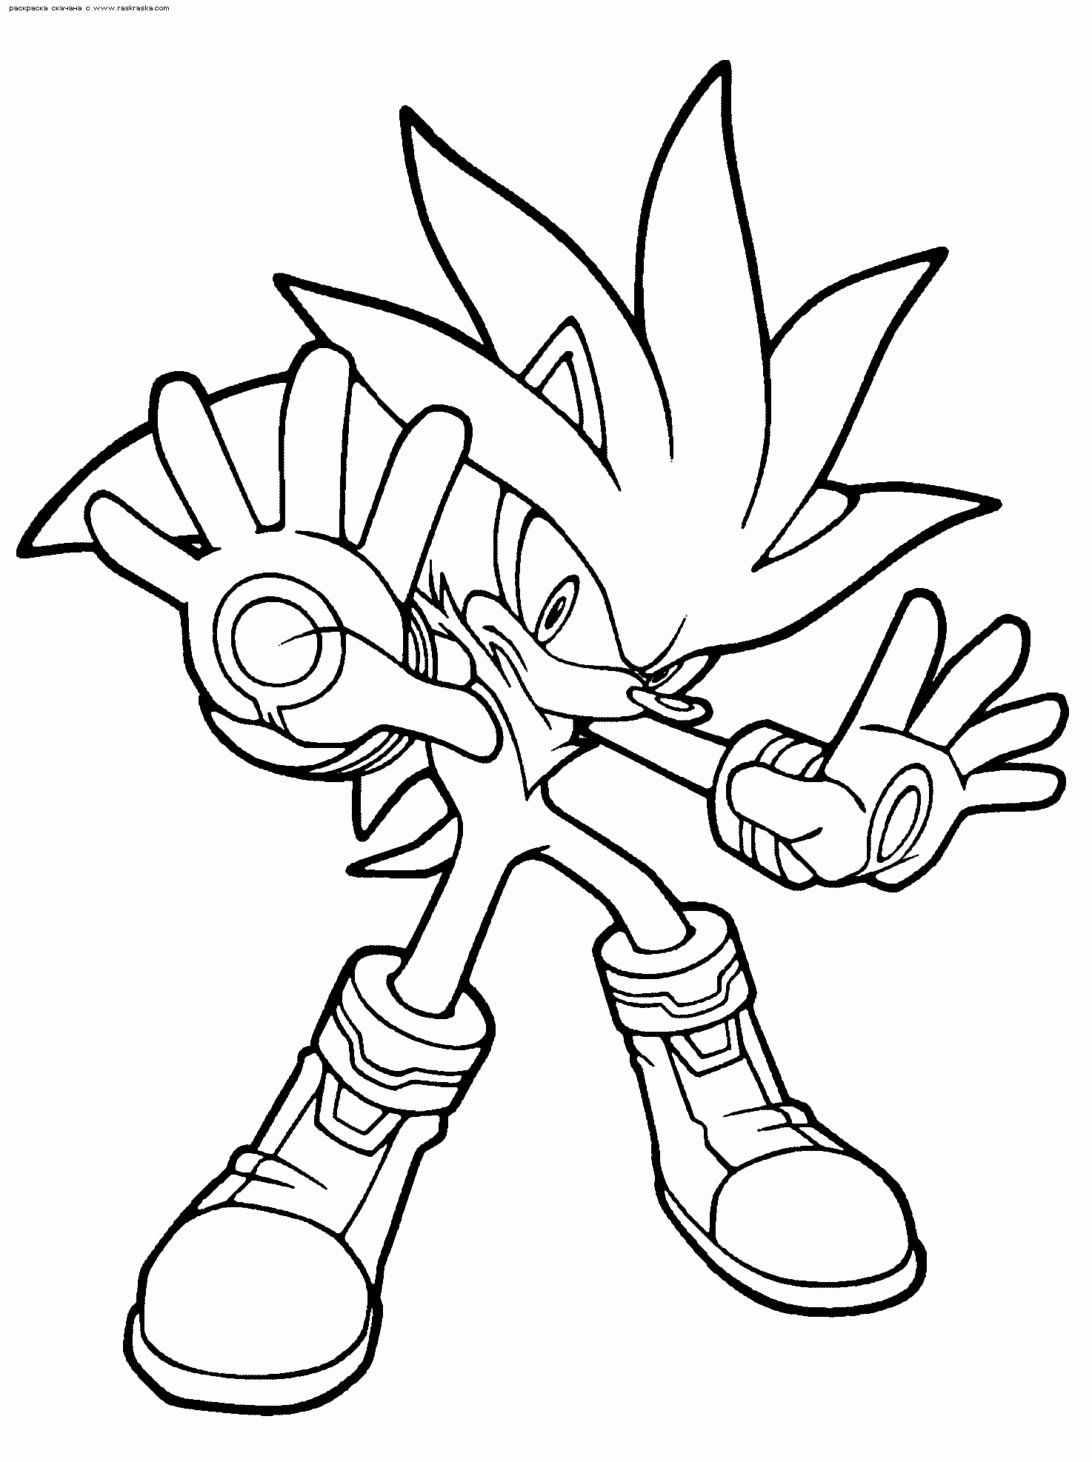 Sonic The Hedgehog Coloring Fresh Page Coloring Sonic Thehog Printable Coloring Pages My Hedgehog Colors Cartoon Coloring Pages Cool Coloring Pages